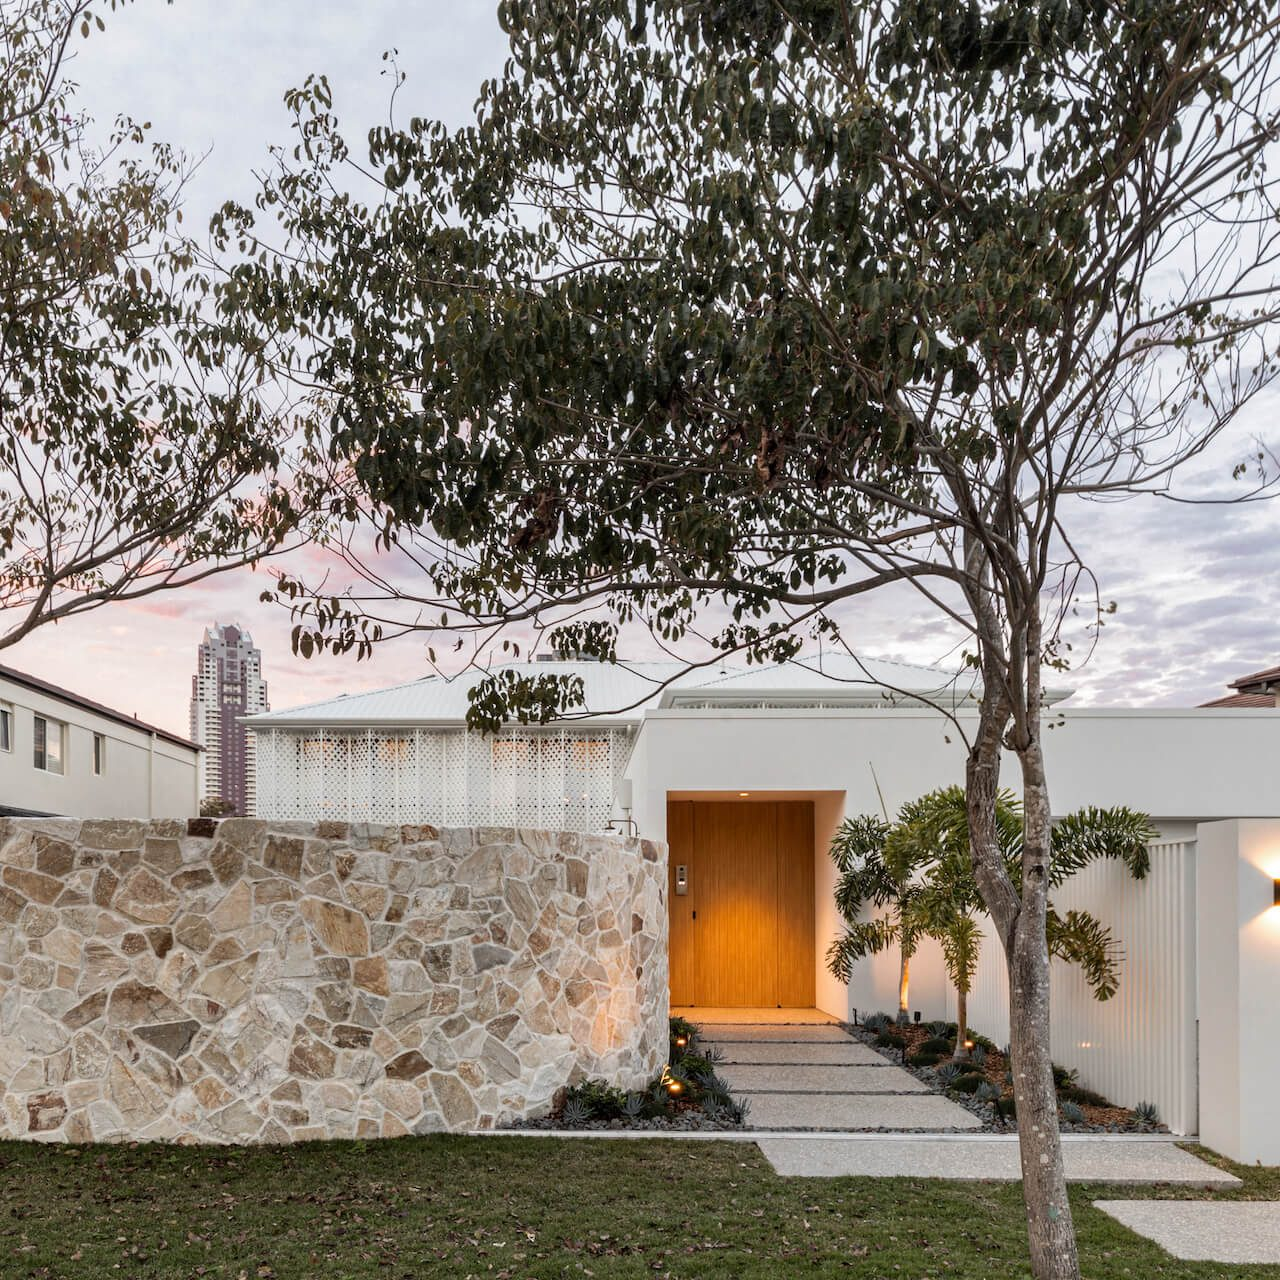 bespoke-projects-gold-coast-luxury-home-builder-project